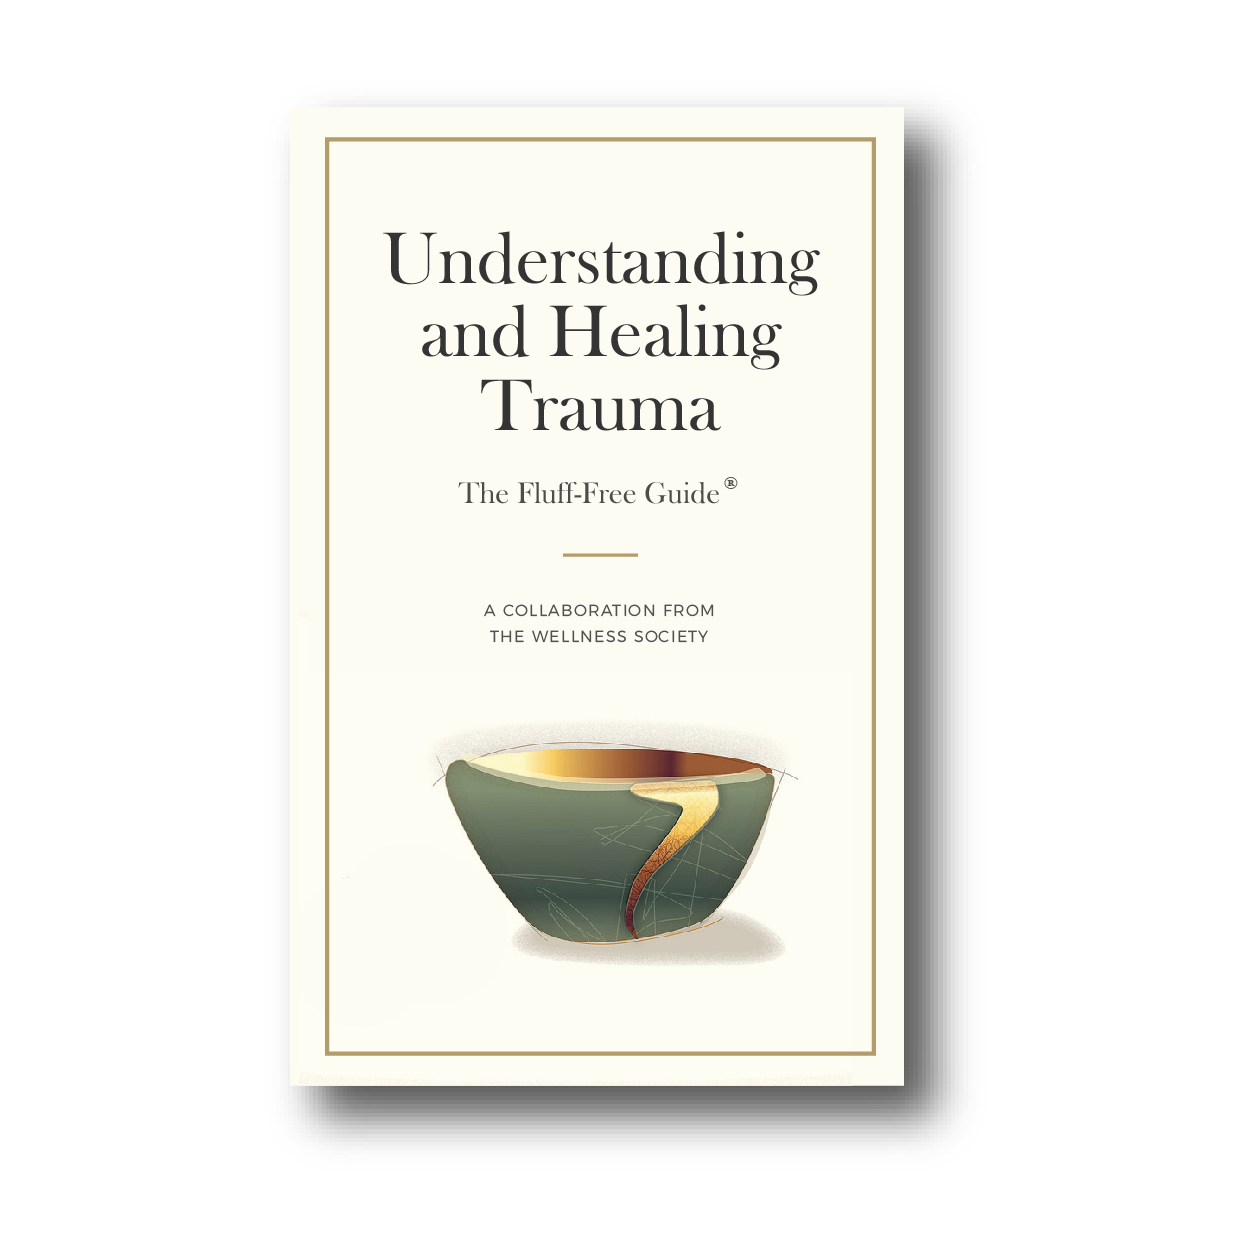 Understanding-and-Healing-Trauma-eBook-01-01-01